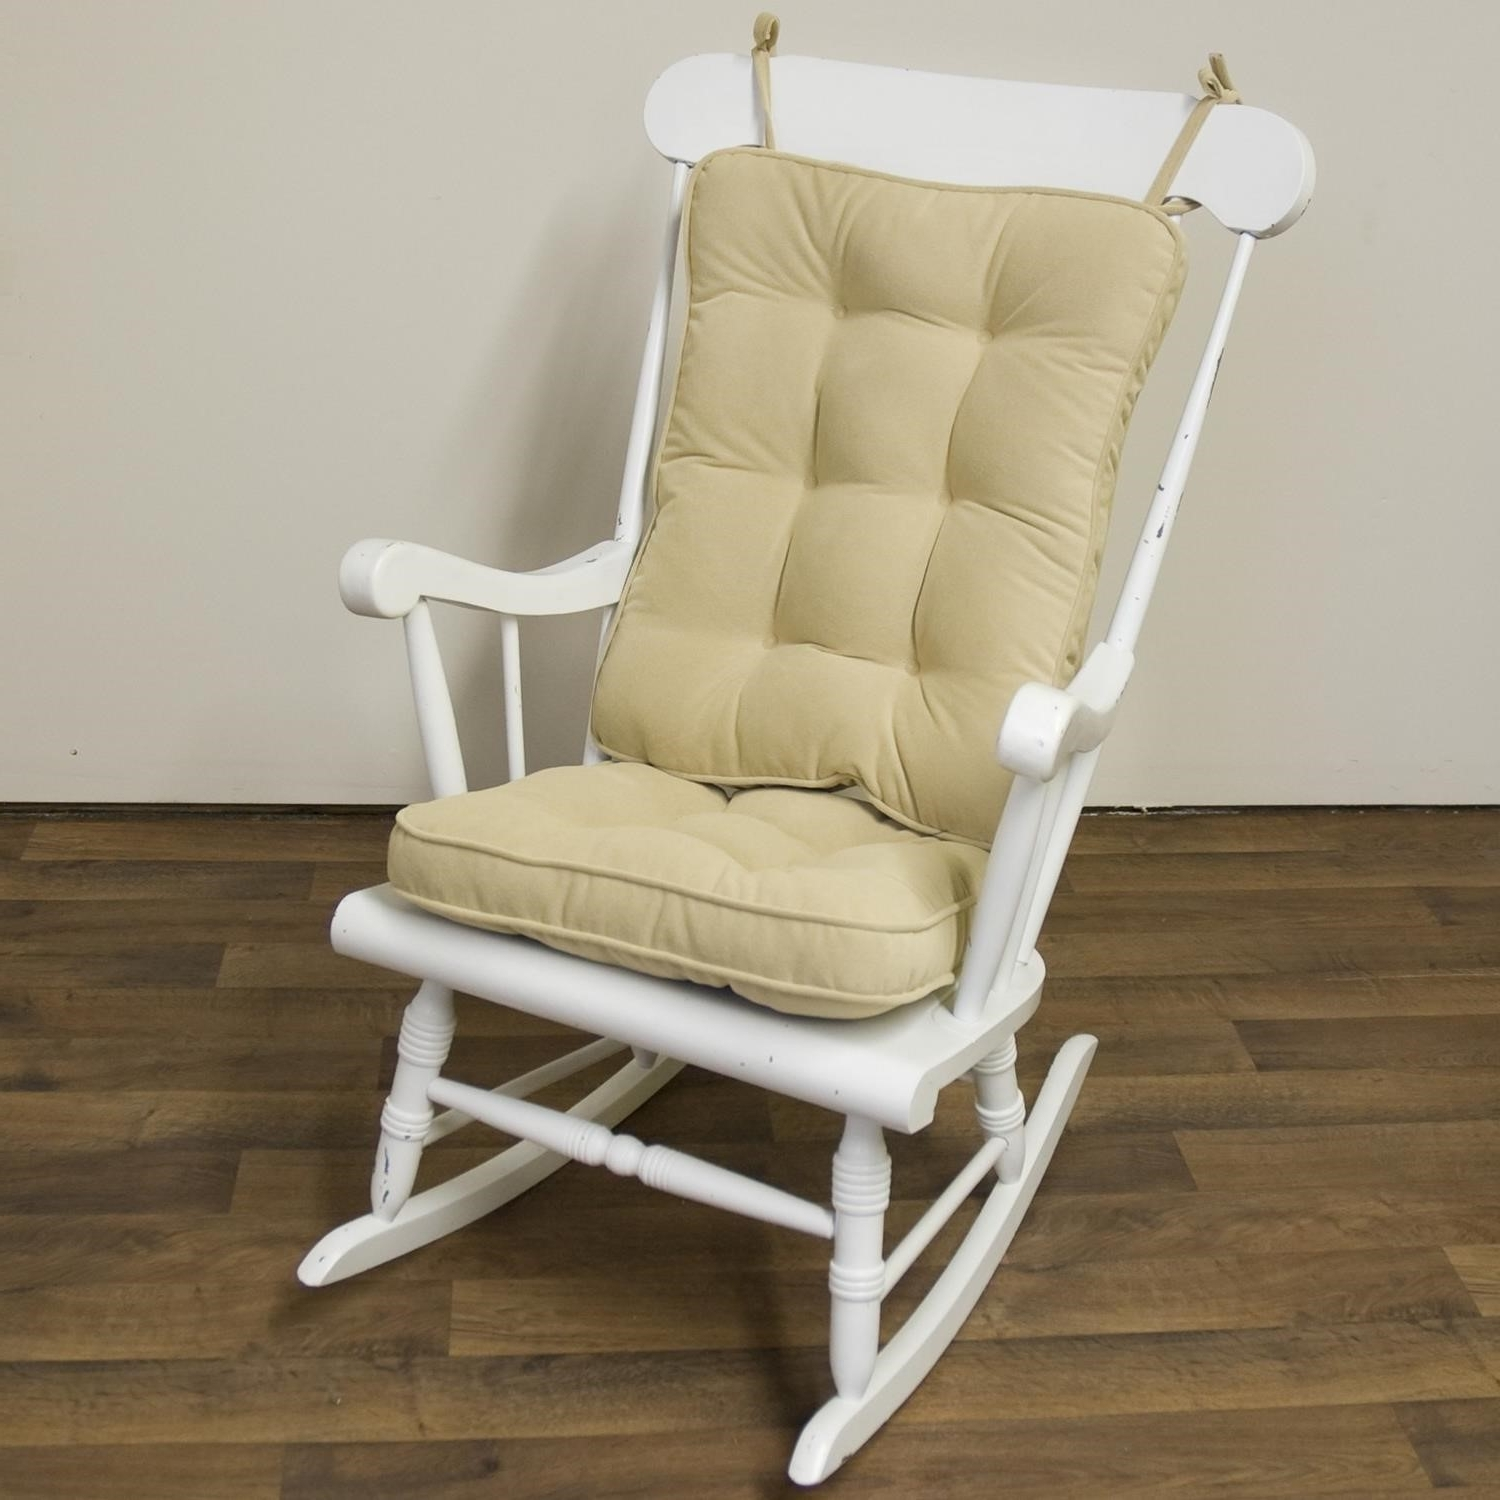 Favorite Rocking Chairs With Cushions Intended For Bedroom: Outstanding Design Of Rocking Chair Cushions For Nursery (View 7 of 15)